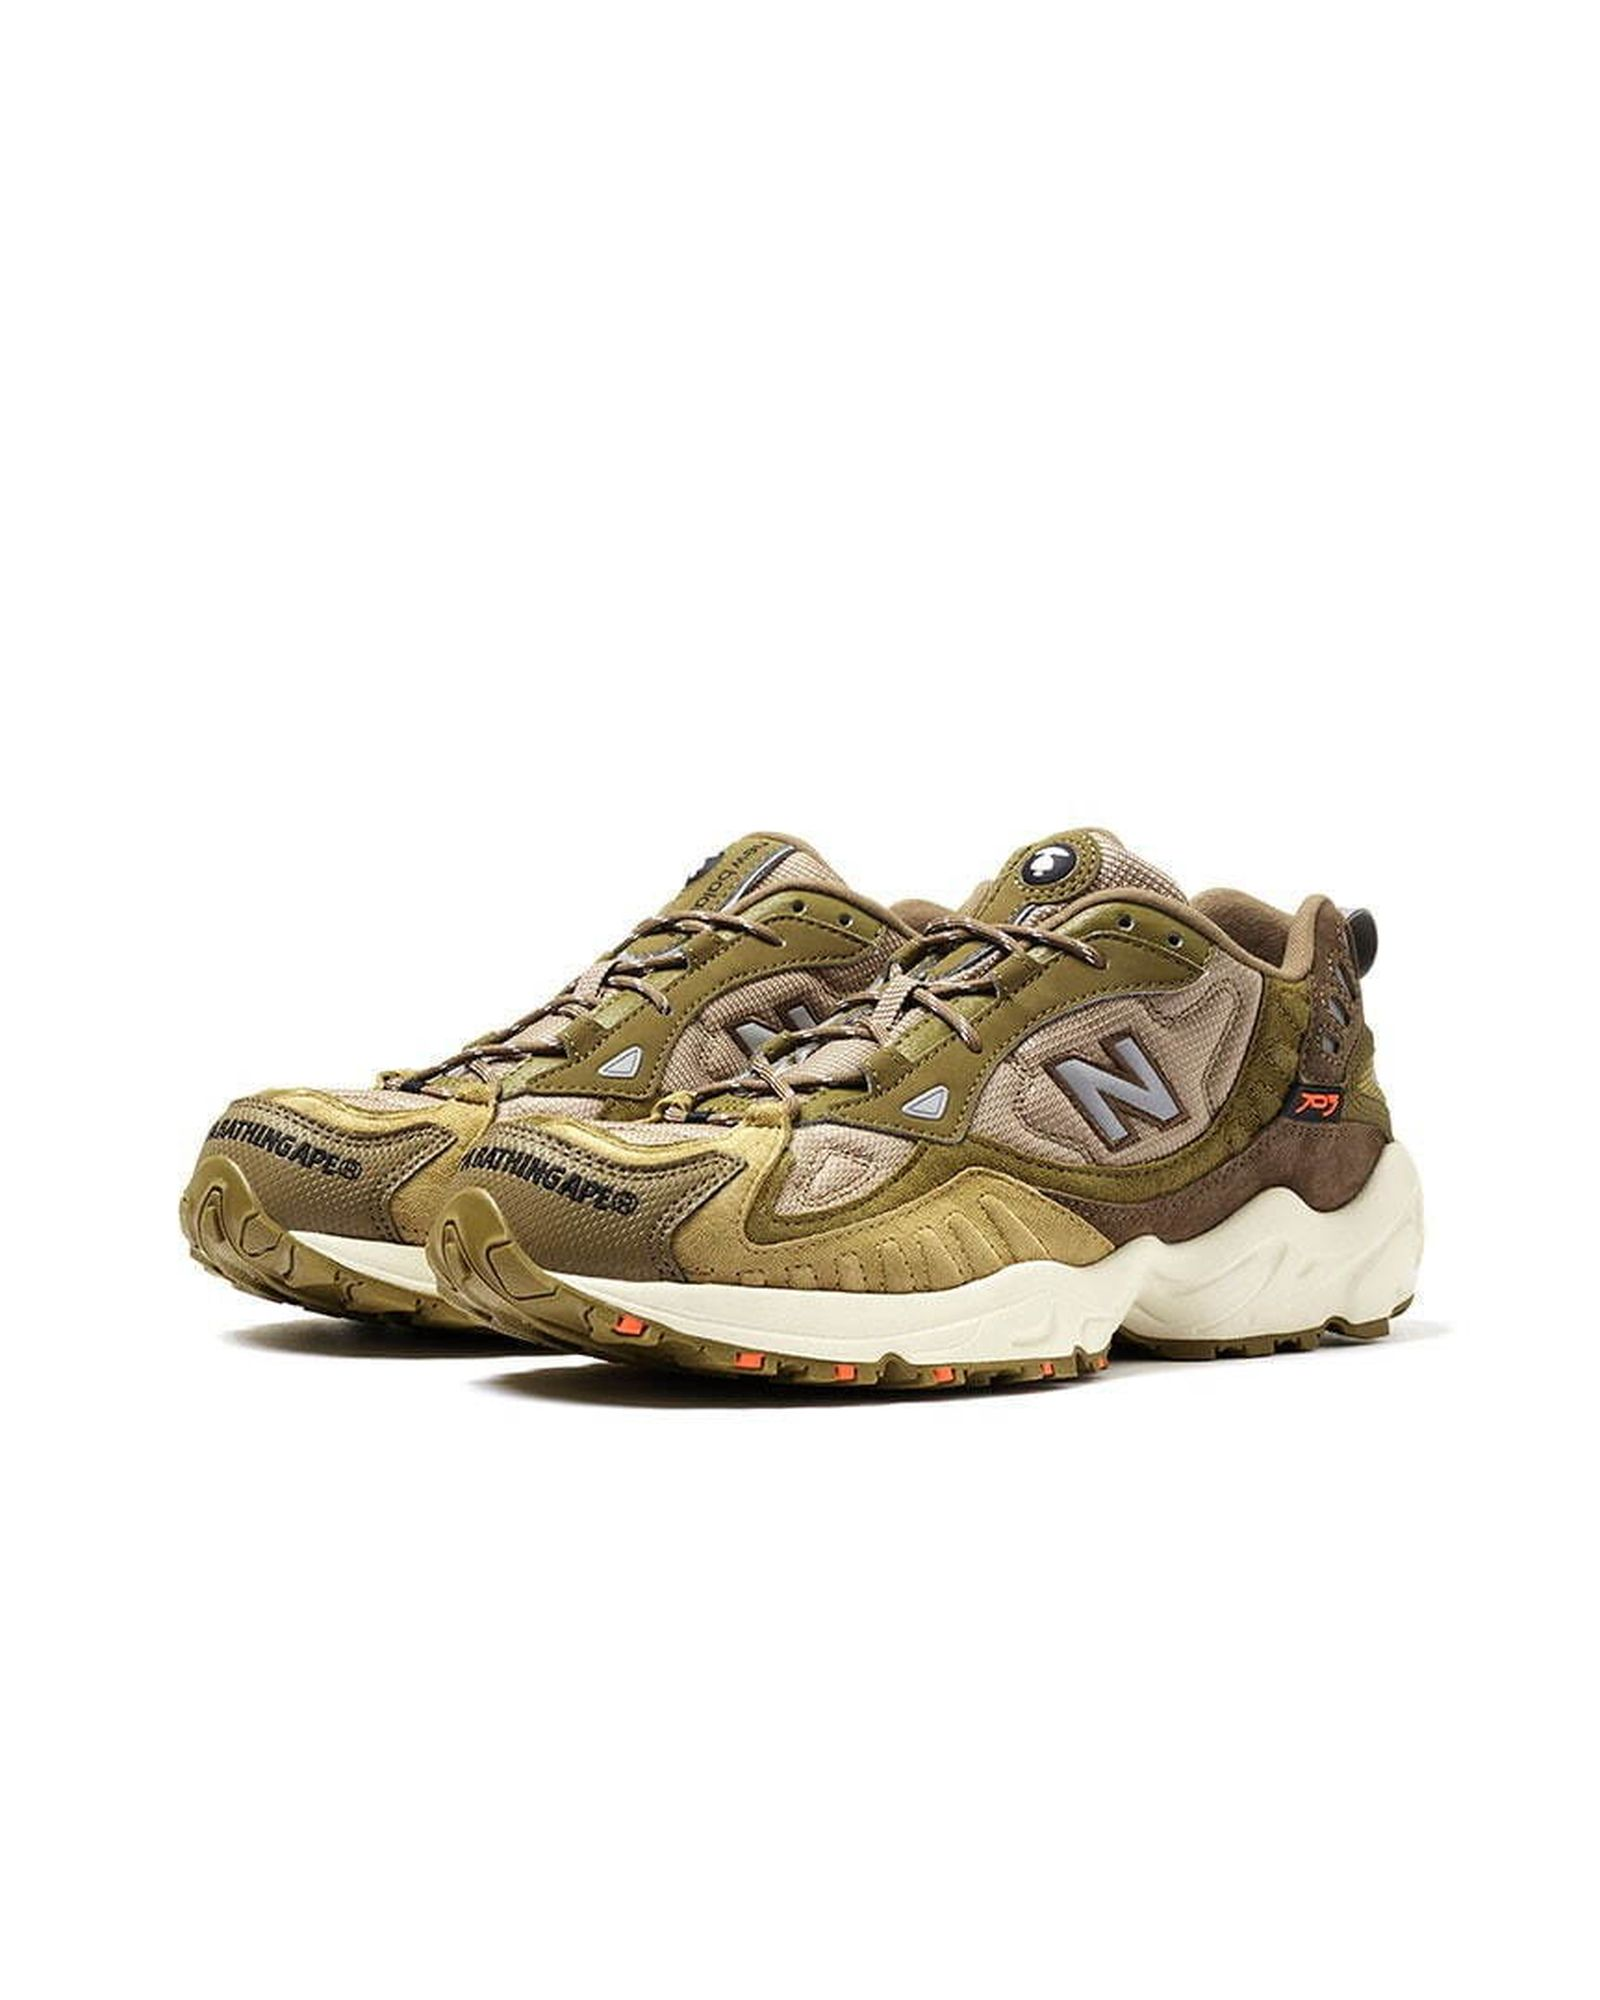 aape-new-balance-collection-release-info-10